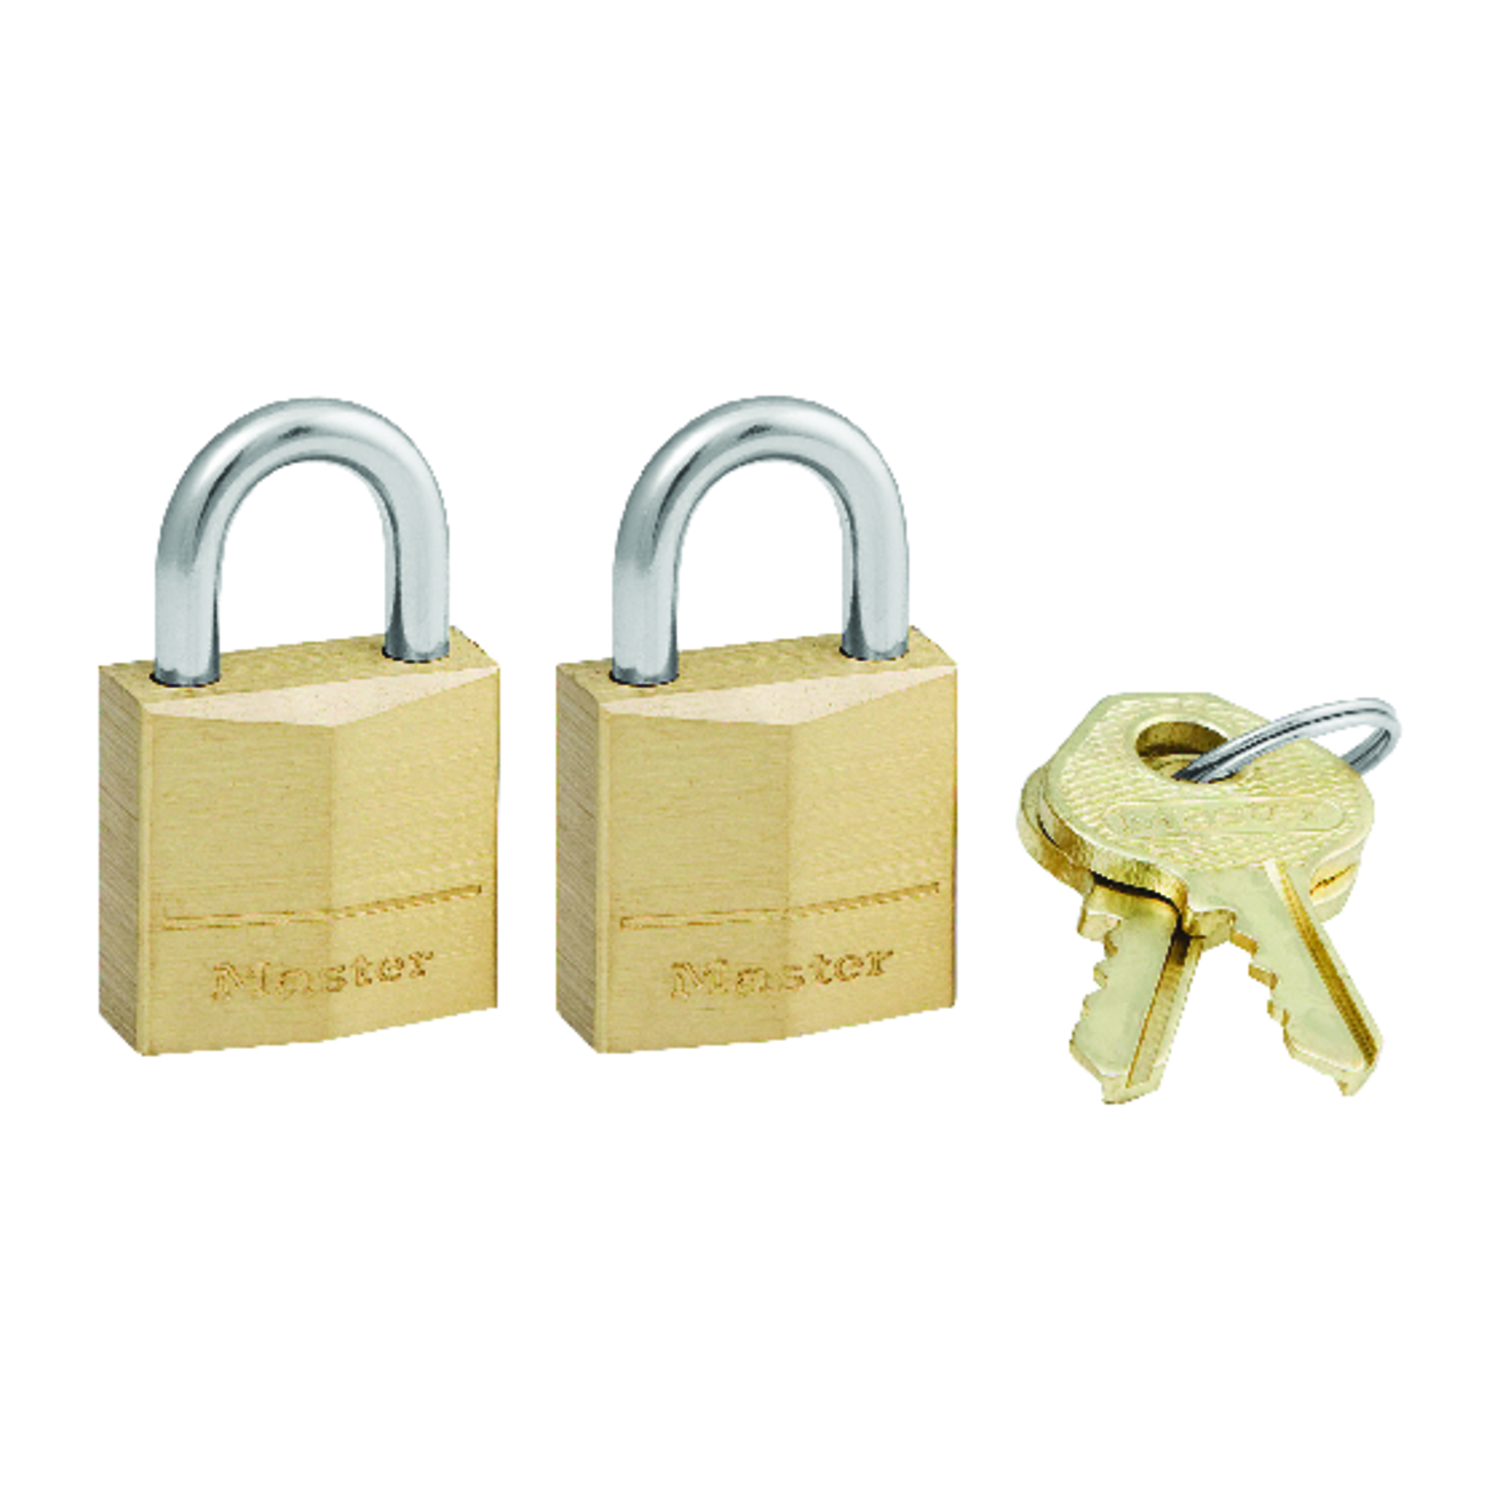 Master Lock  3/4 in. H x 7/16 in. W Brass  Padlock  2 pk Keyed Alike Pin Cylinder